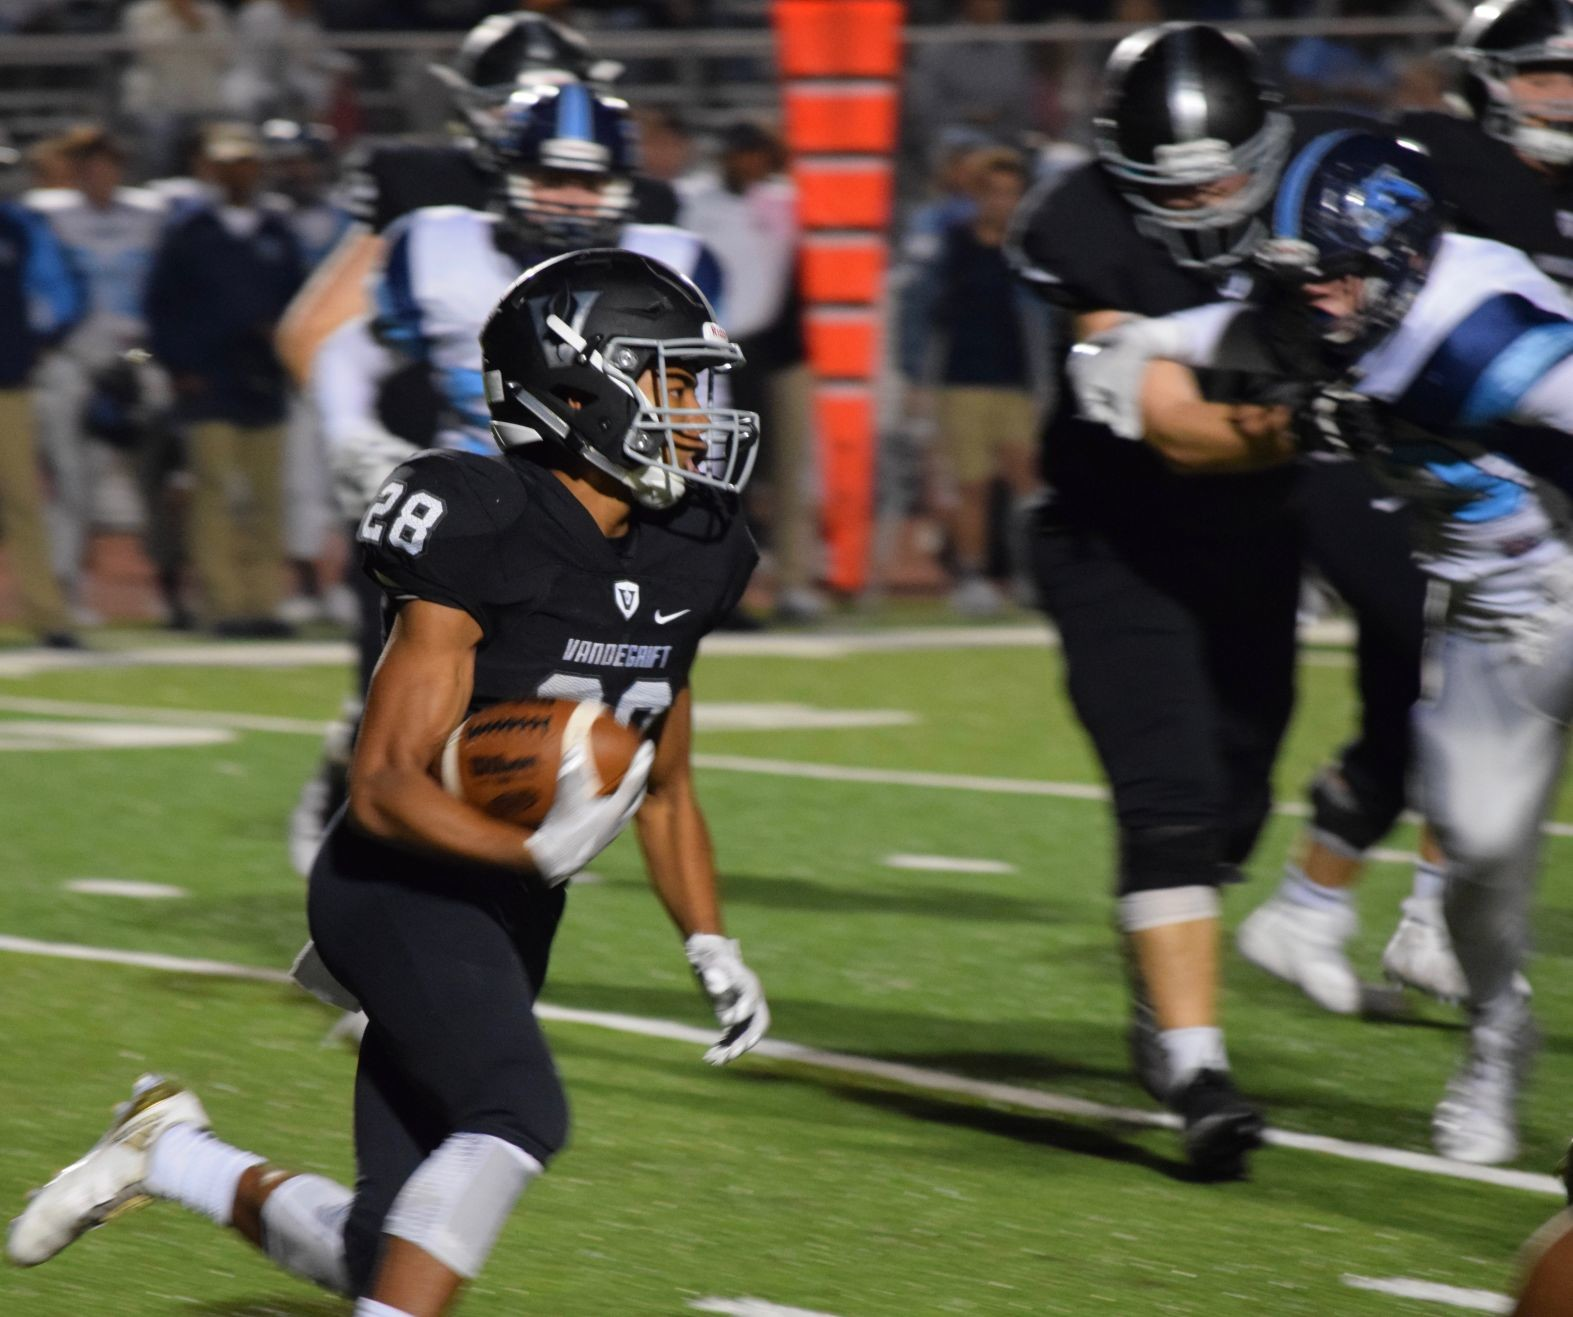 Mack Parker had 27 yards and a touchdown as Vandegrift rallied to beat San Antonio Johnson 27-26 in the first round of the playoffs on Friday.